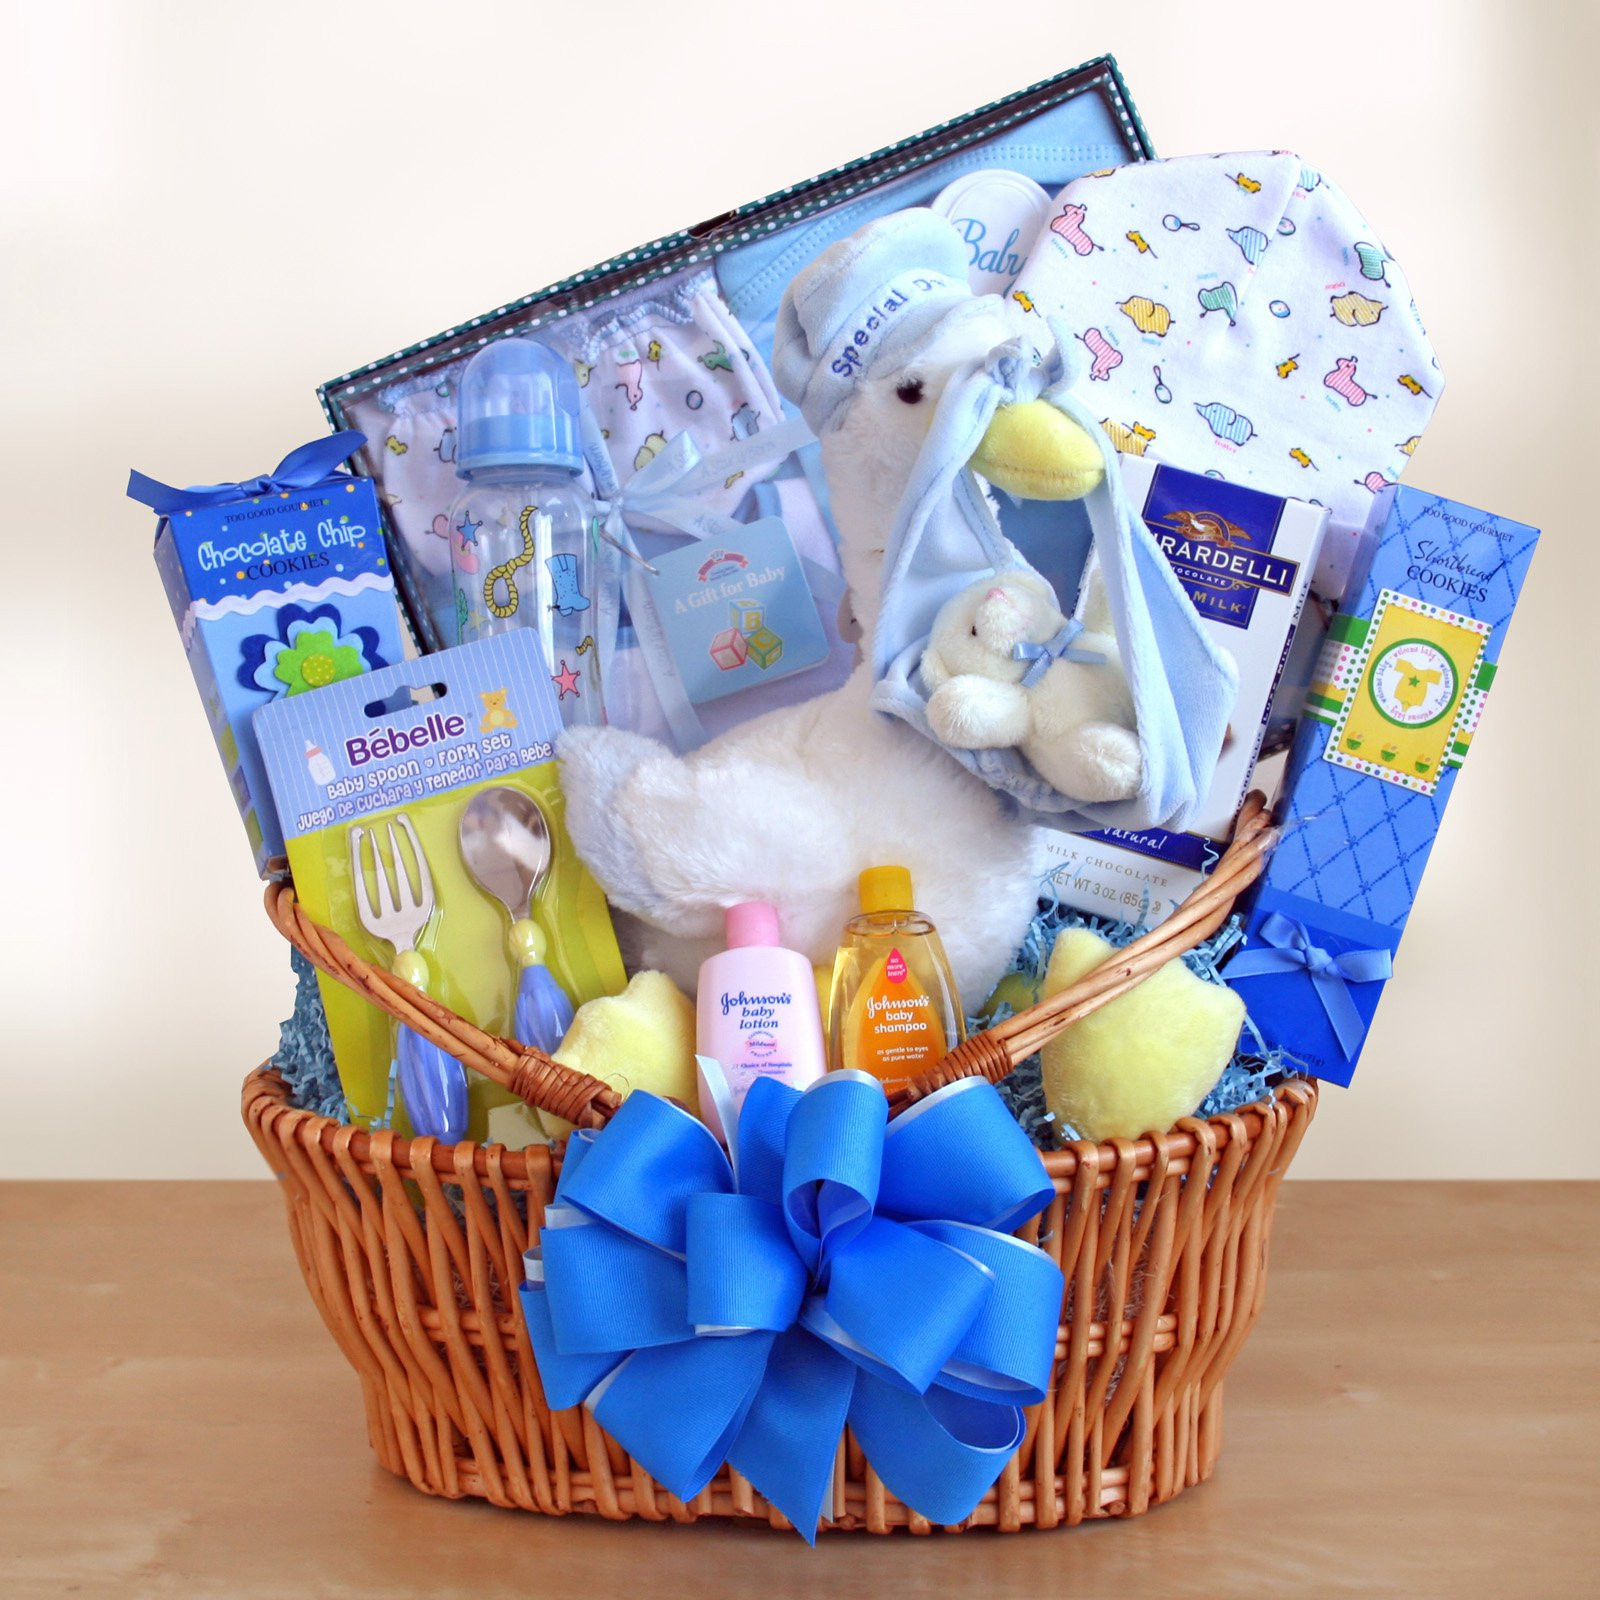 Best ideas about Baby Boy Shower Gift Ideas . Save or Pin Special Stork Delivery Baby Boy Gift Basket Gift Baskets Now.